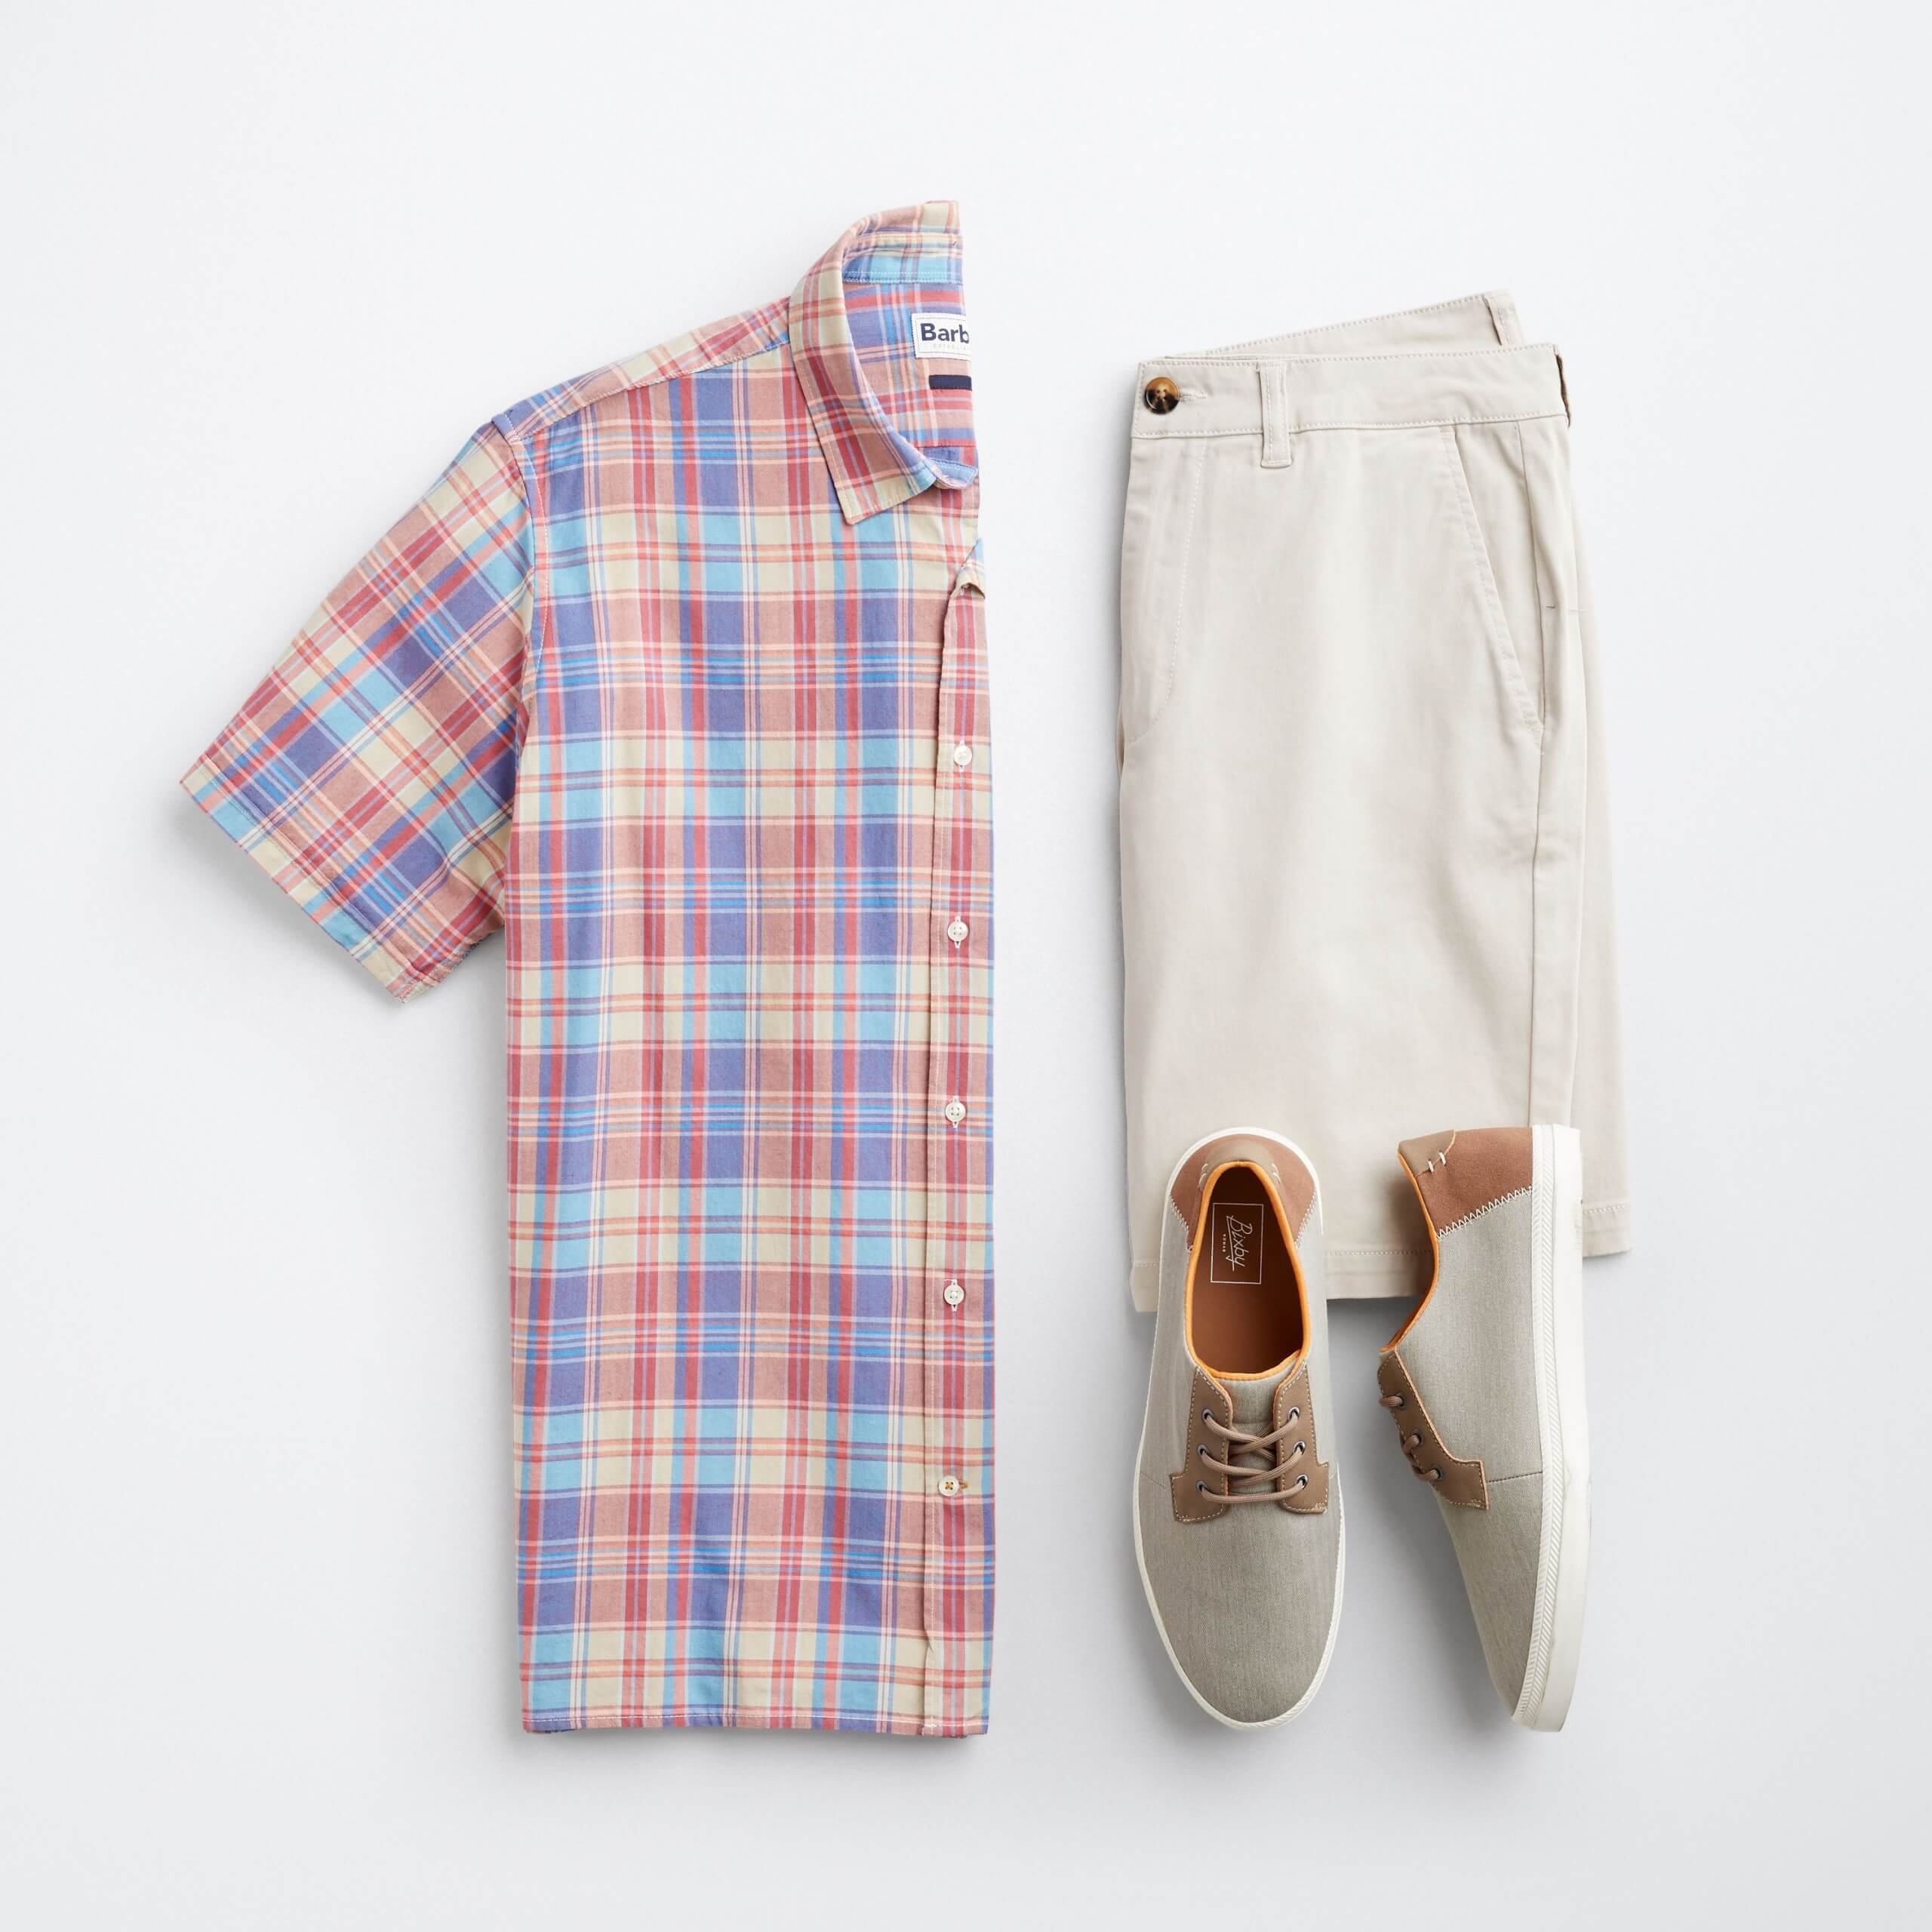 Stitch Fix men's laydown featuring plaid short-sleeved button-down shirt, tan trouser shorts, and grey and brown sneakers.